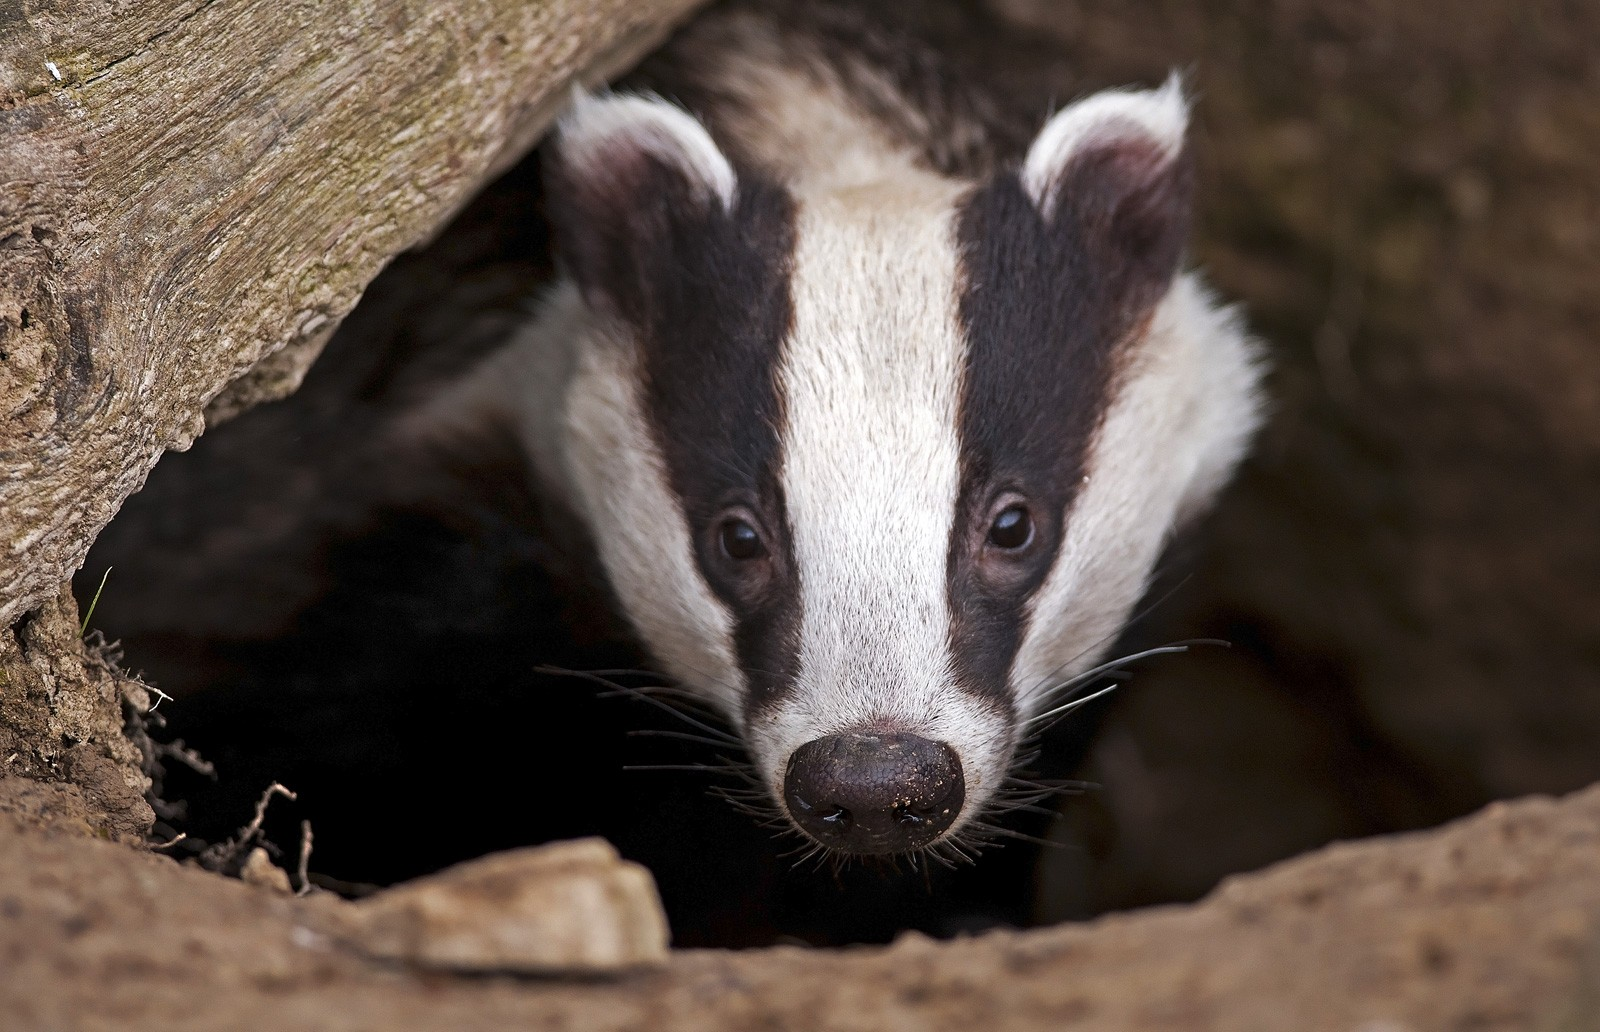 Symbolic Badger Meaning for Tattoo Ideas